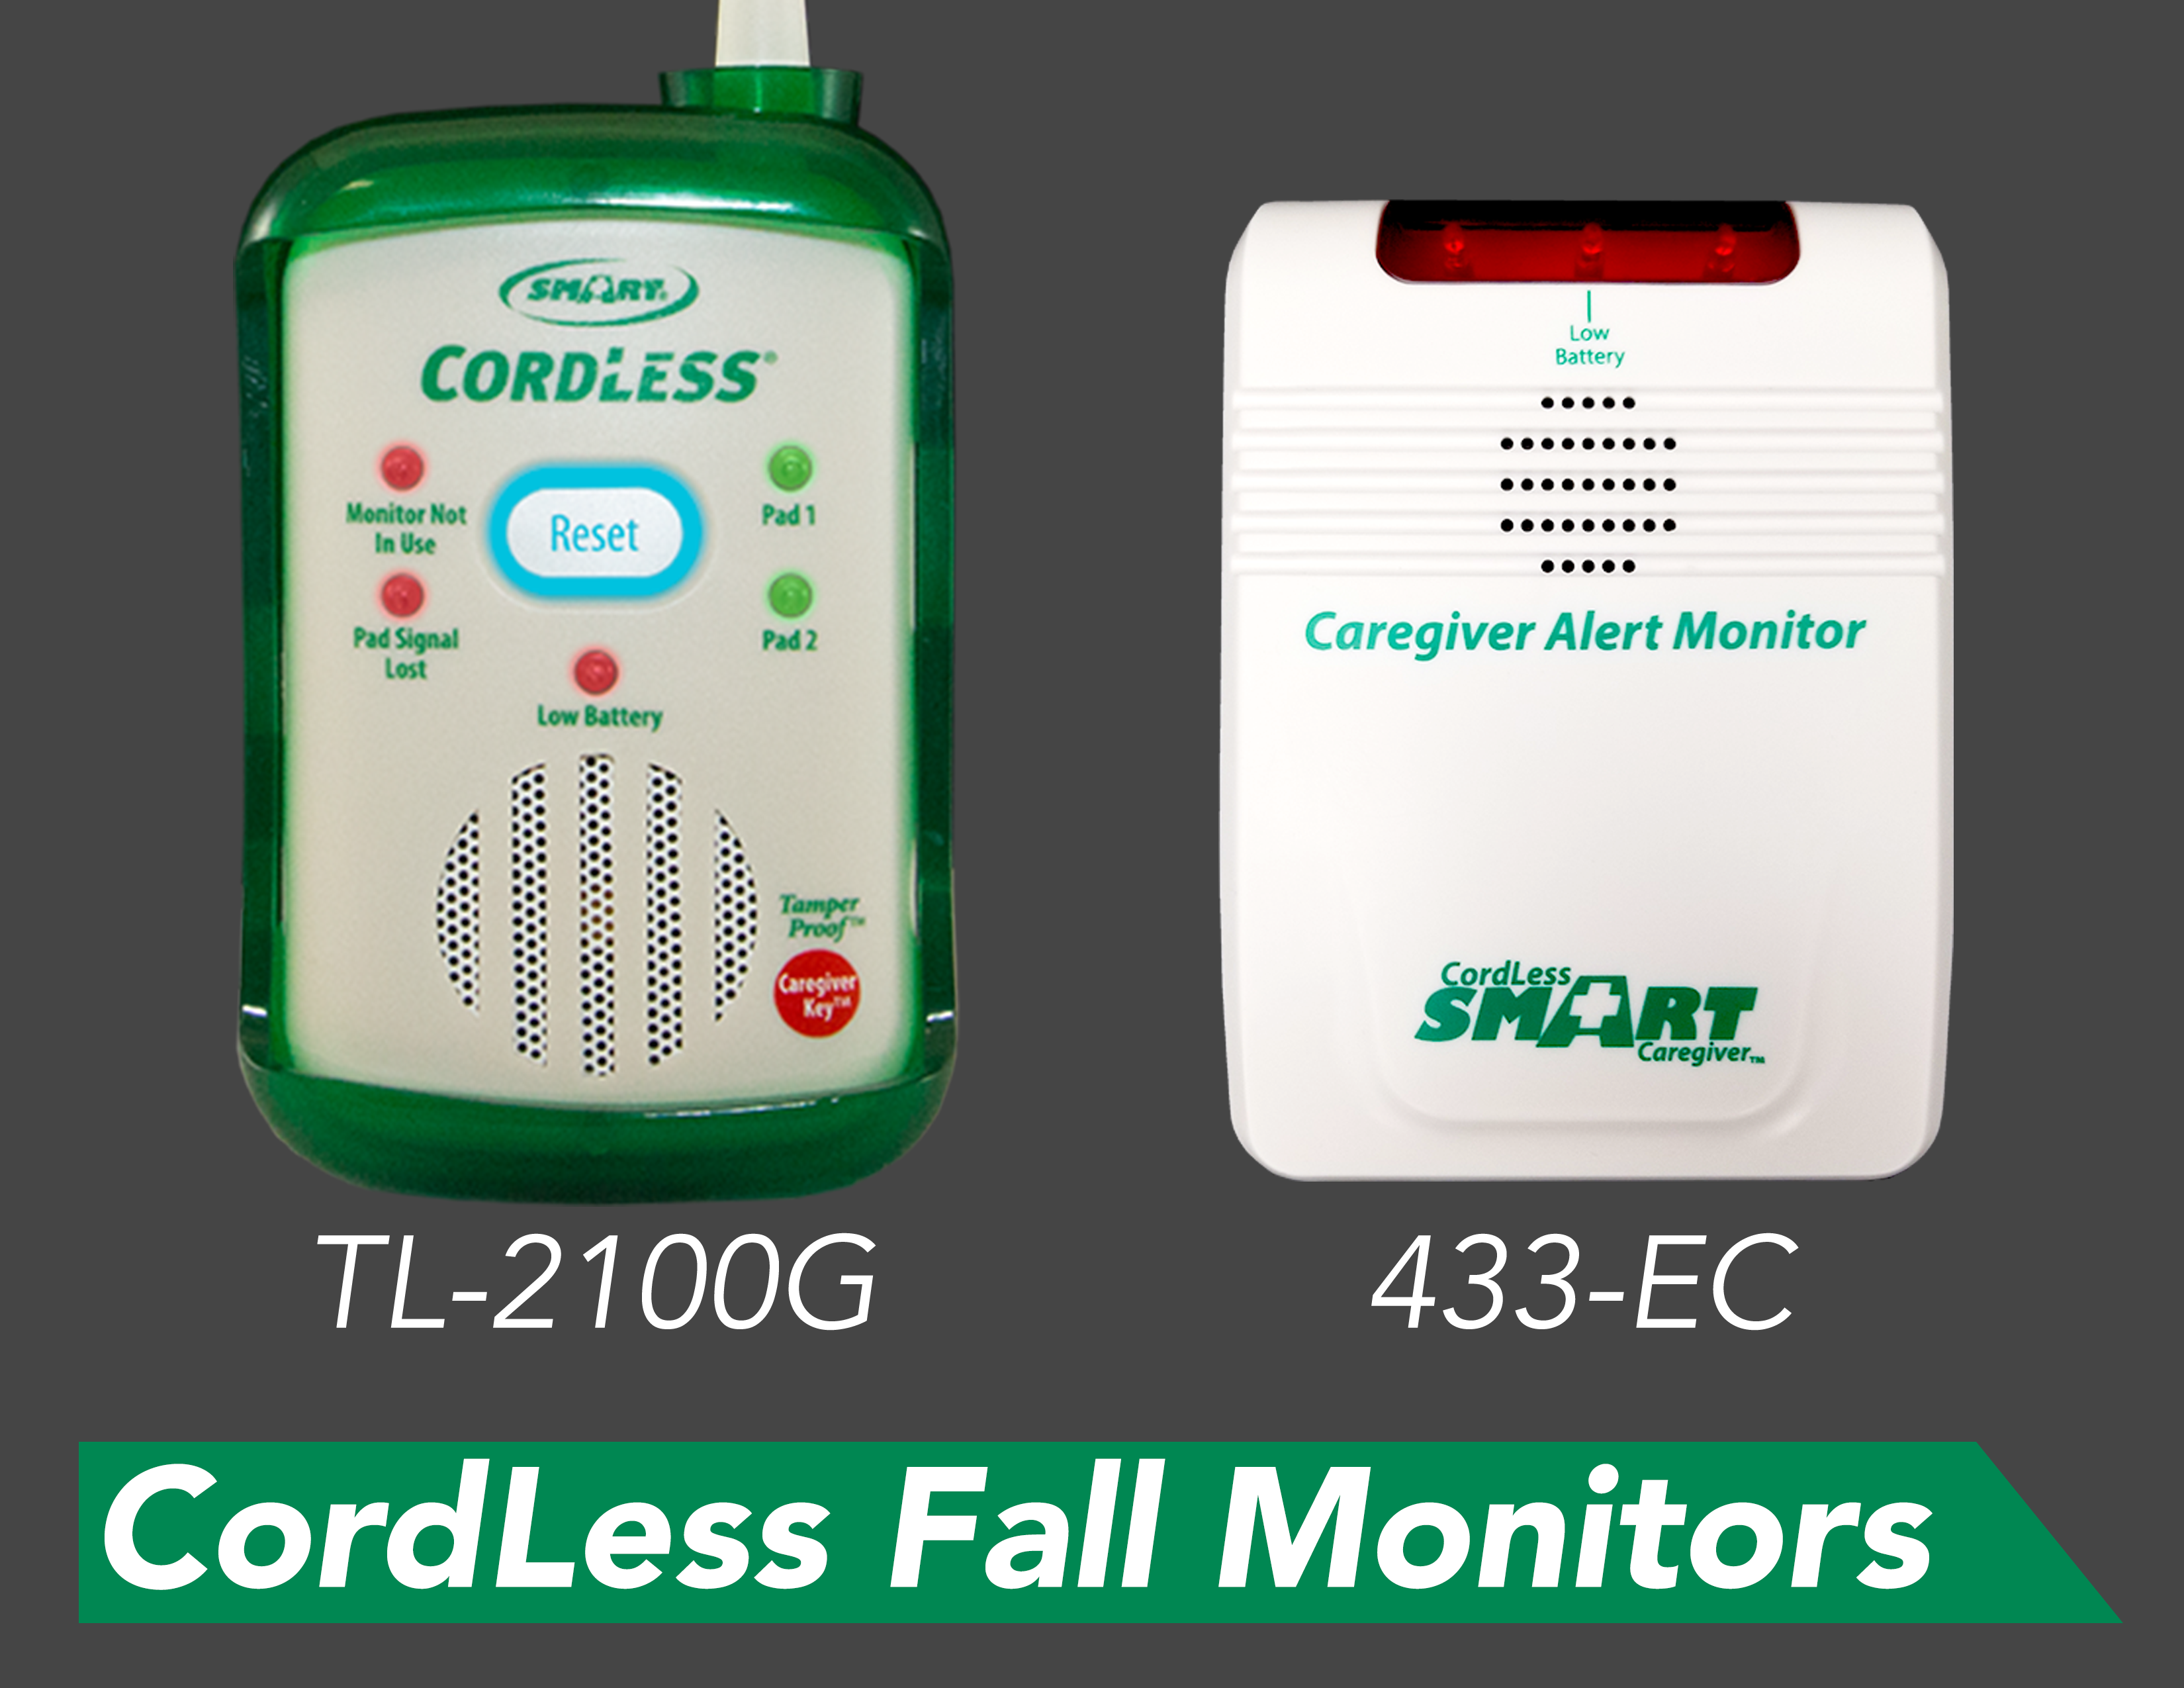 Fall Monitors / Exit Alarms   Fall Prevention and Anti-Wandering